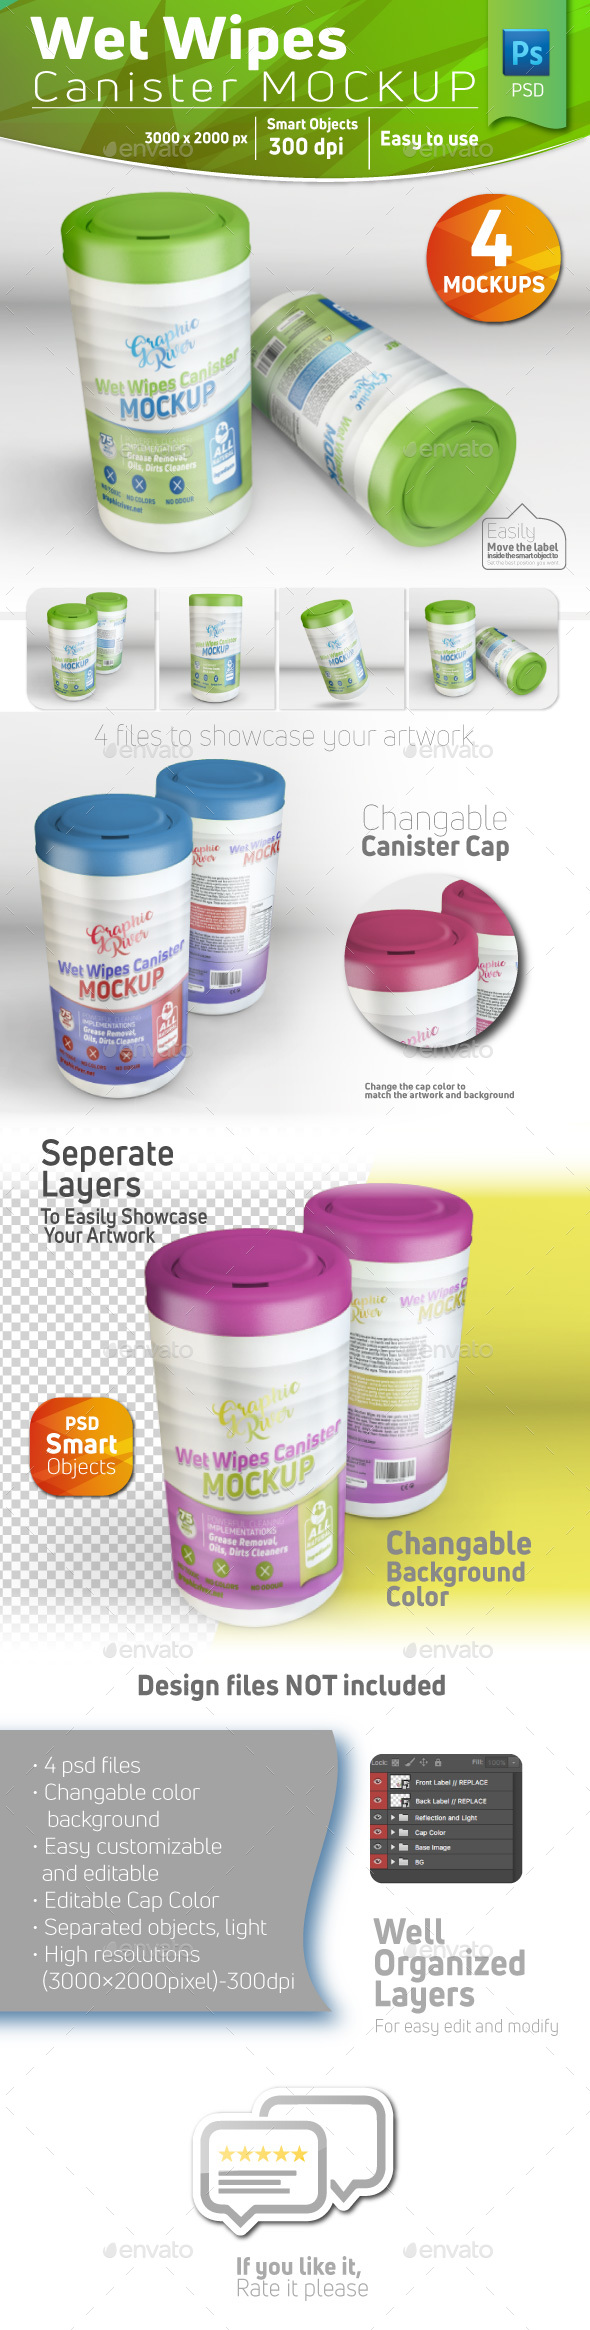 Wet Wipes Canister Mockup - Product Mock-Ups Graphics